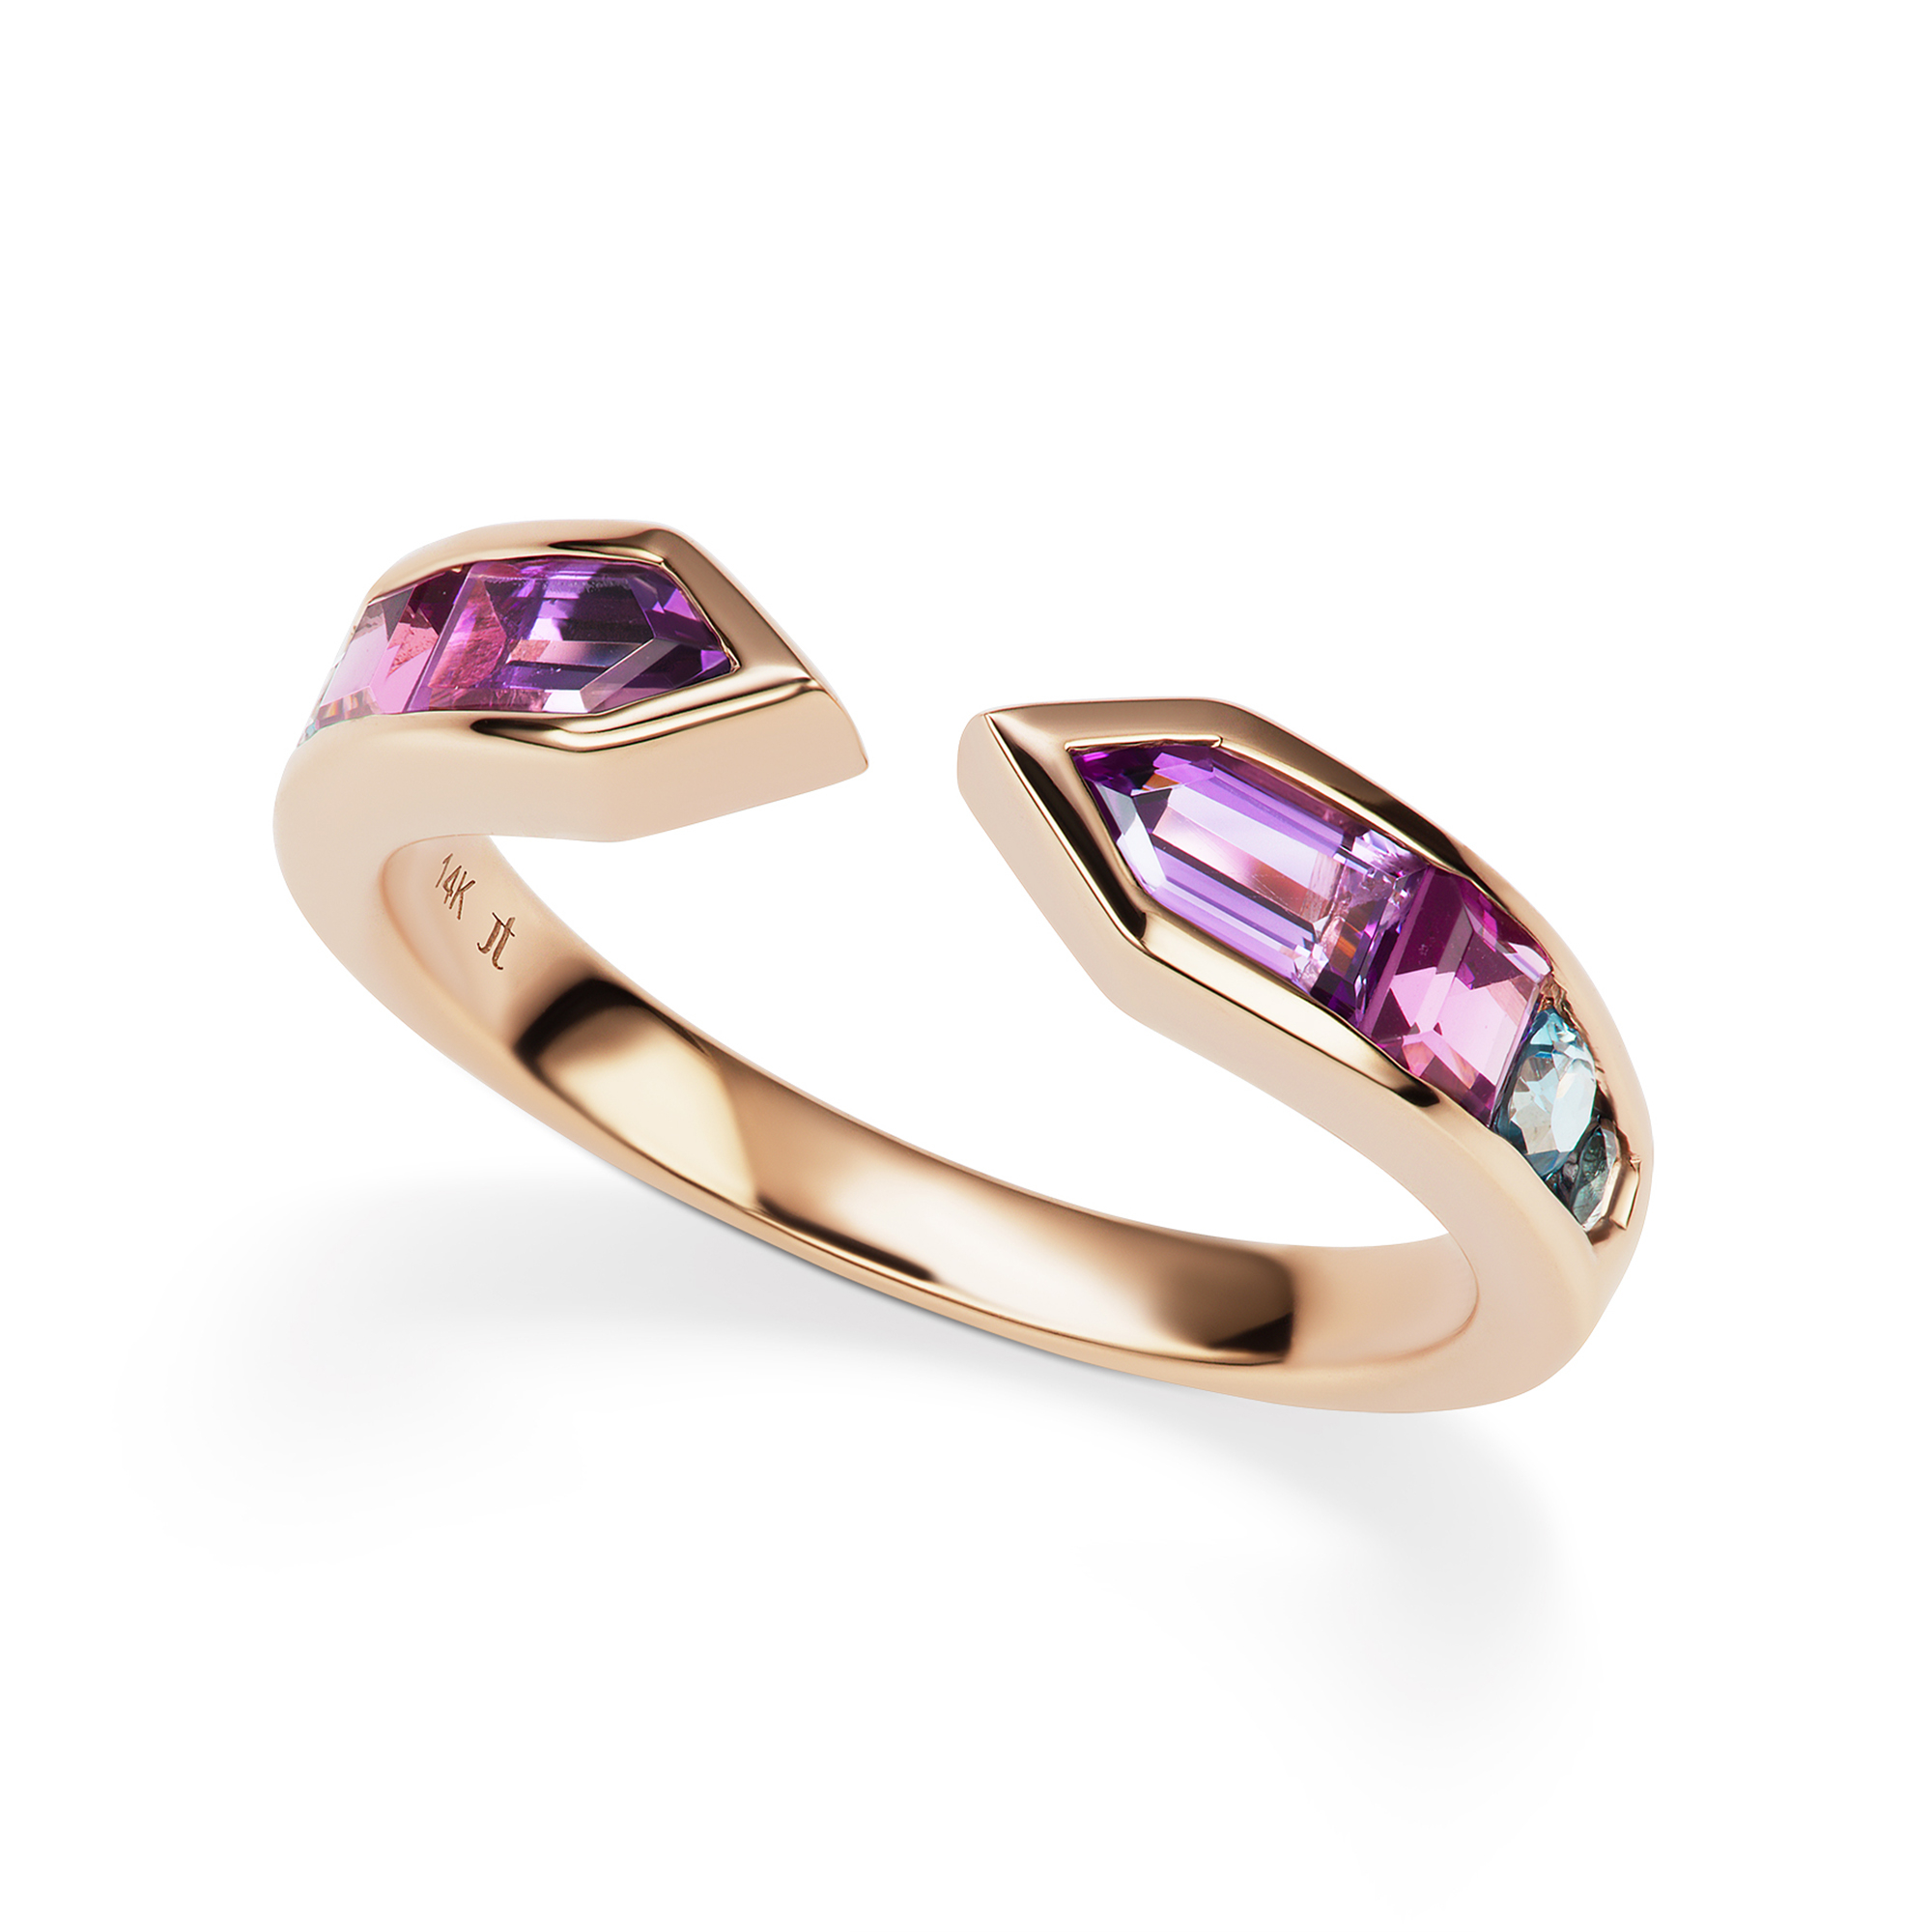 Jane Taylor Amethyst, Garnet & Topaz Cirque Meeting Arrows Ring